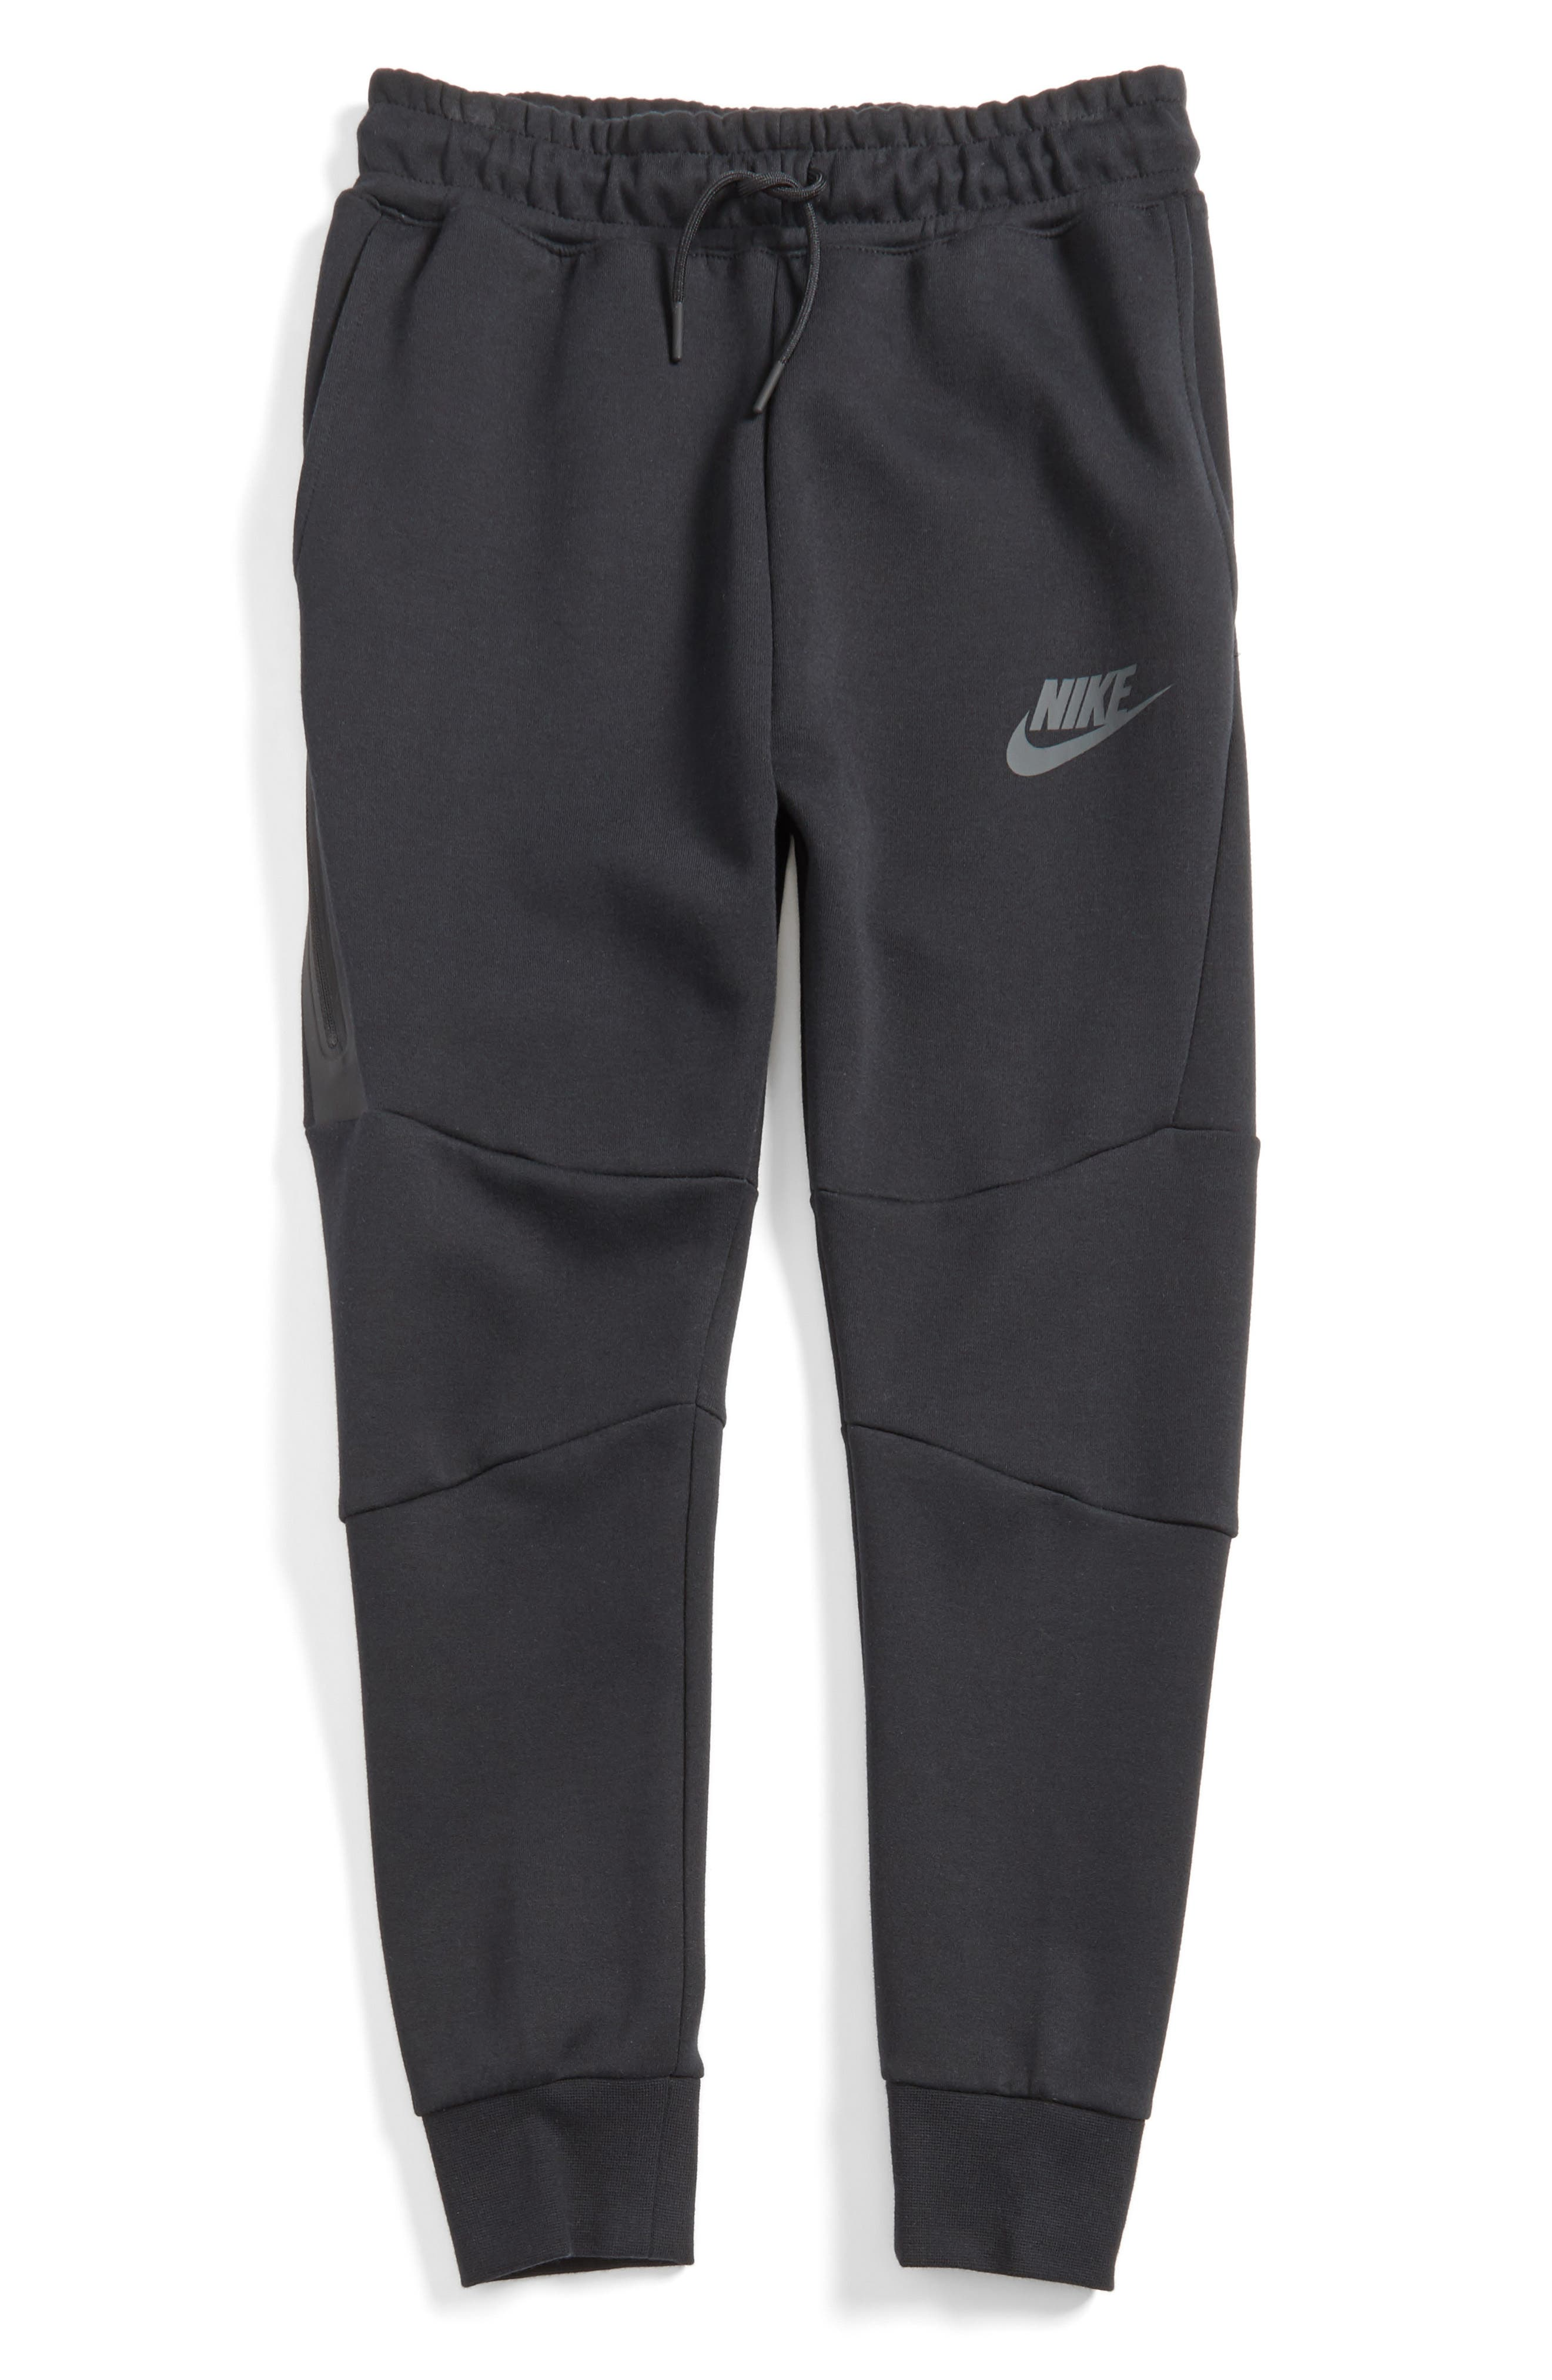 Main Image - Nike Tech Fleece Pants (Little Boys & Big Boys)